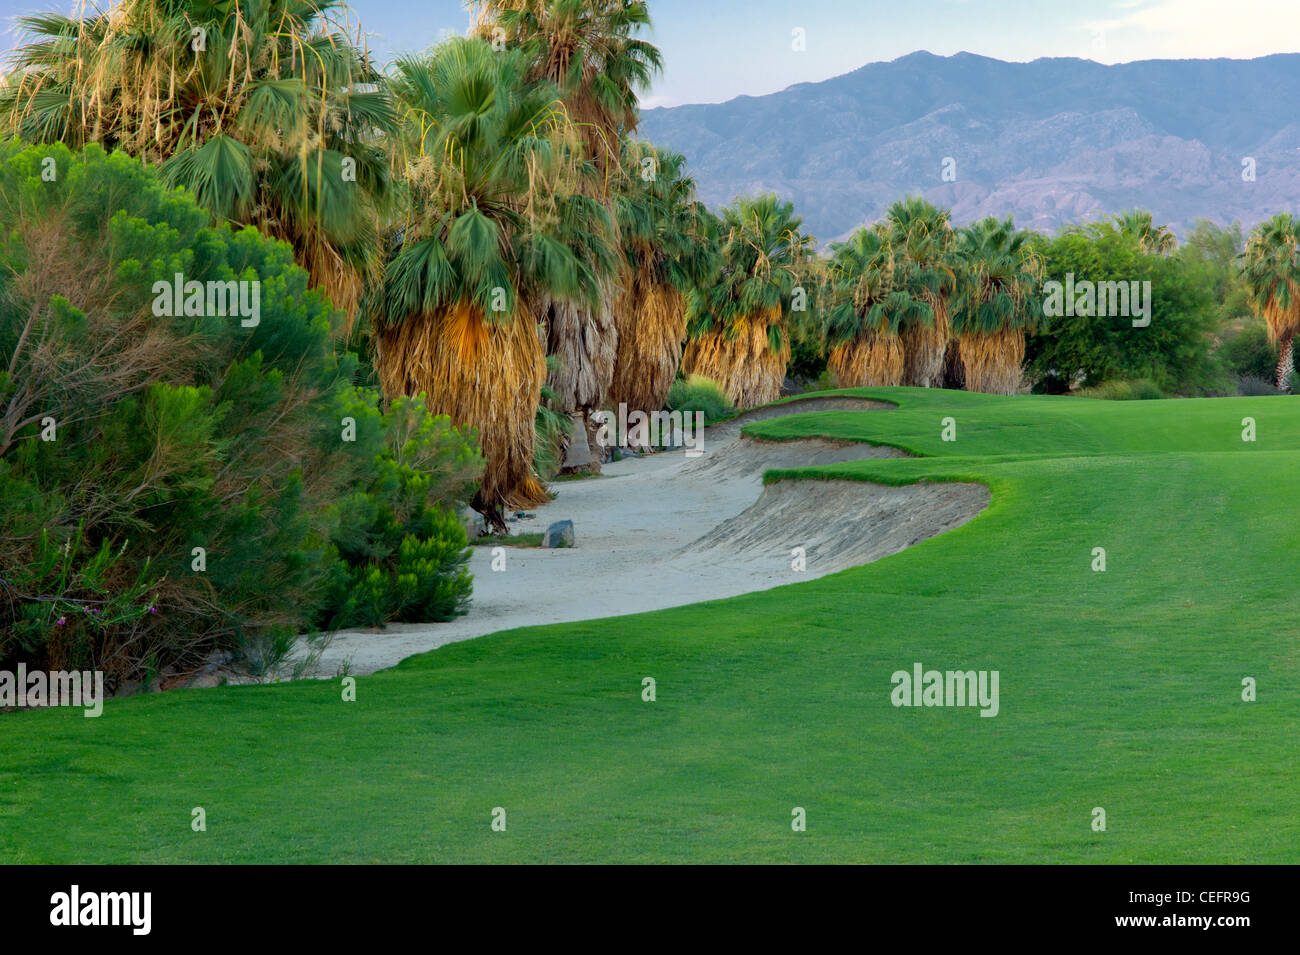 L'aménagement paysager autour de Desert Willow Golf Resort. Palm Desert, Californie Photo Stock